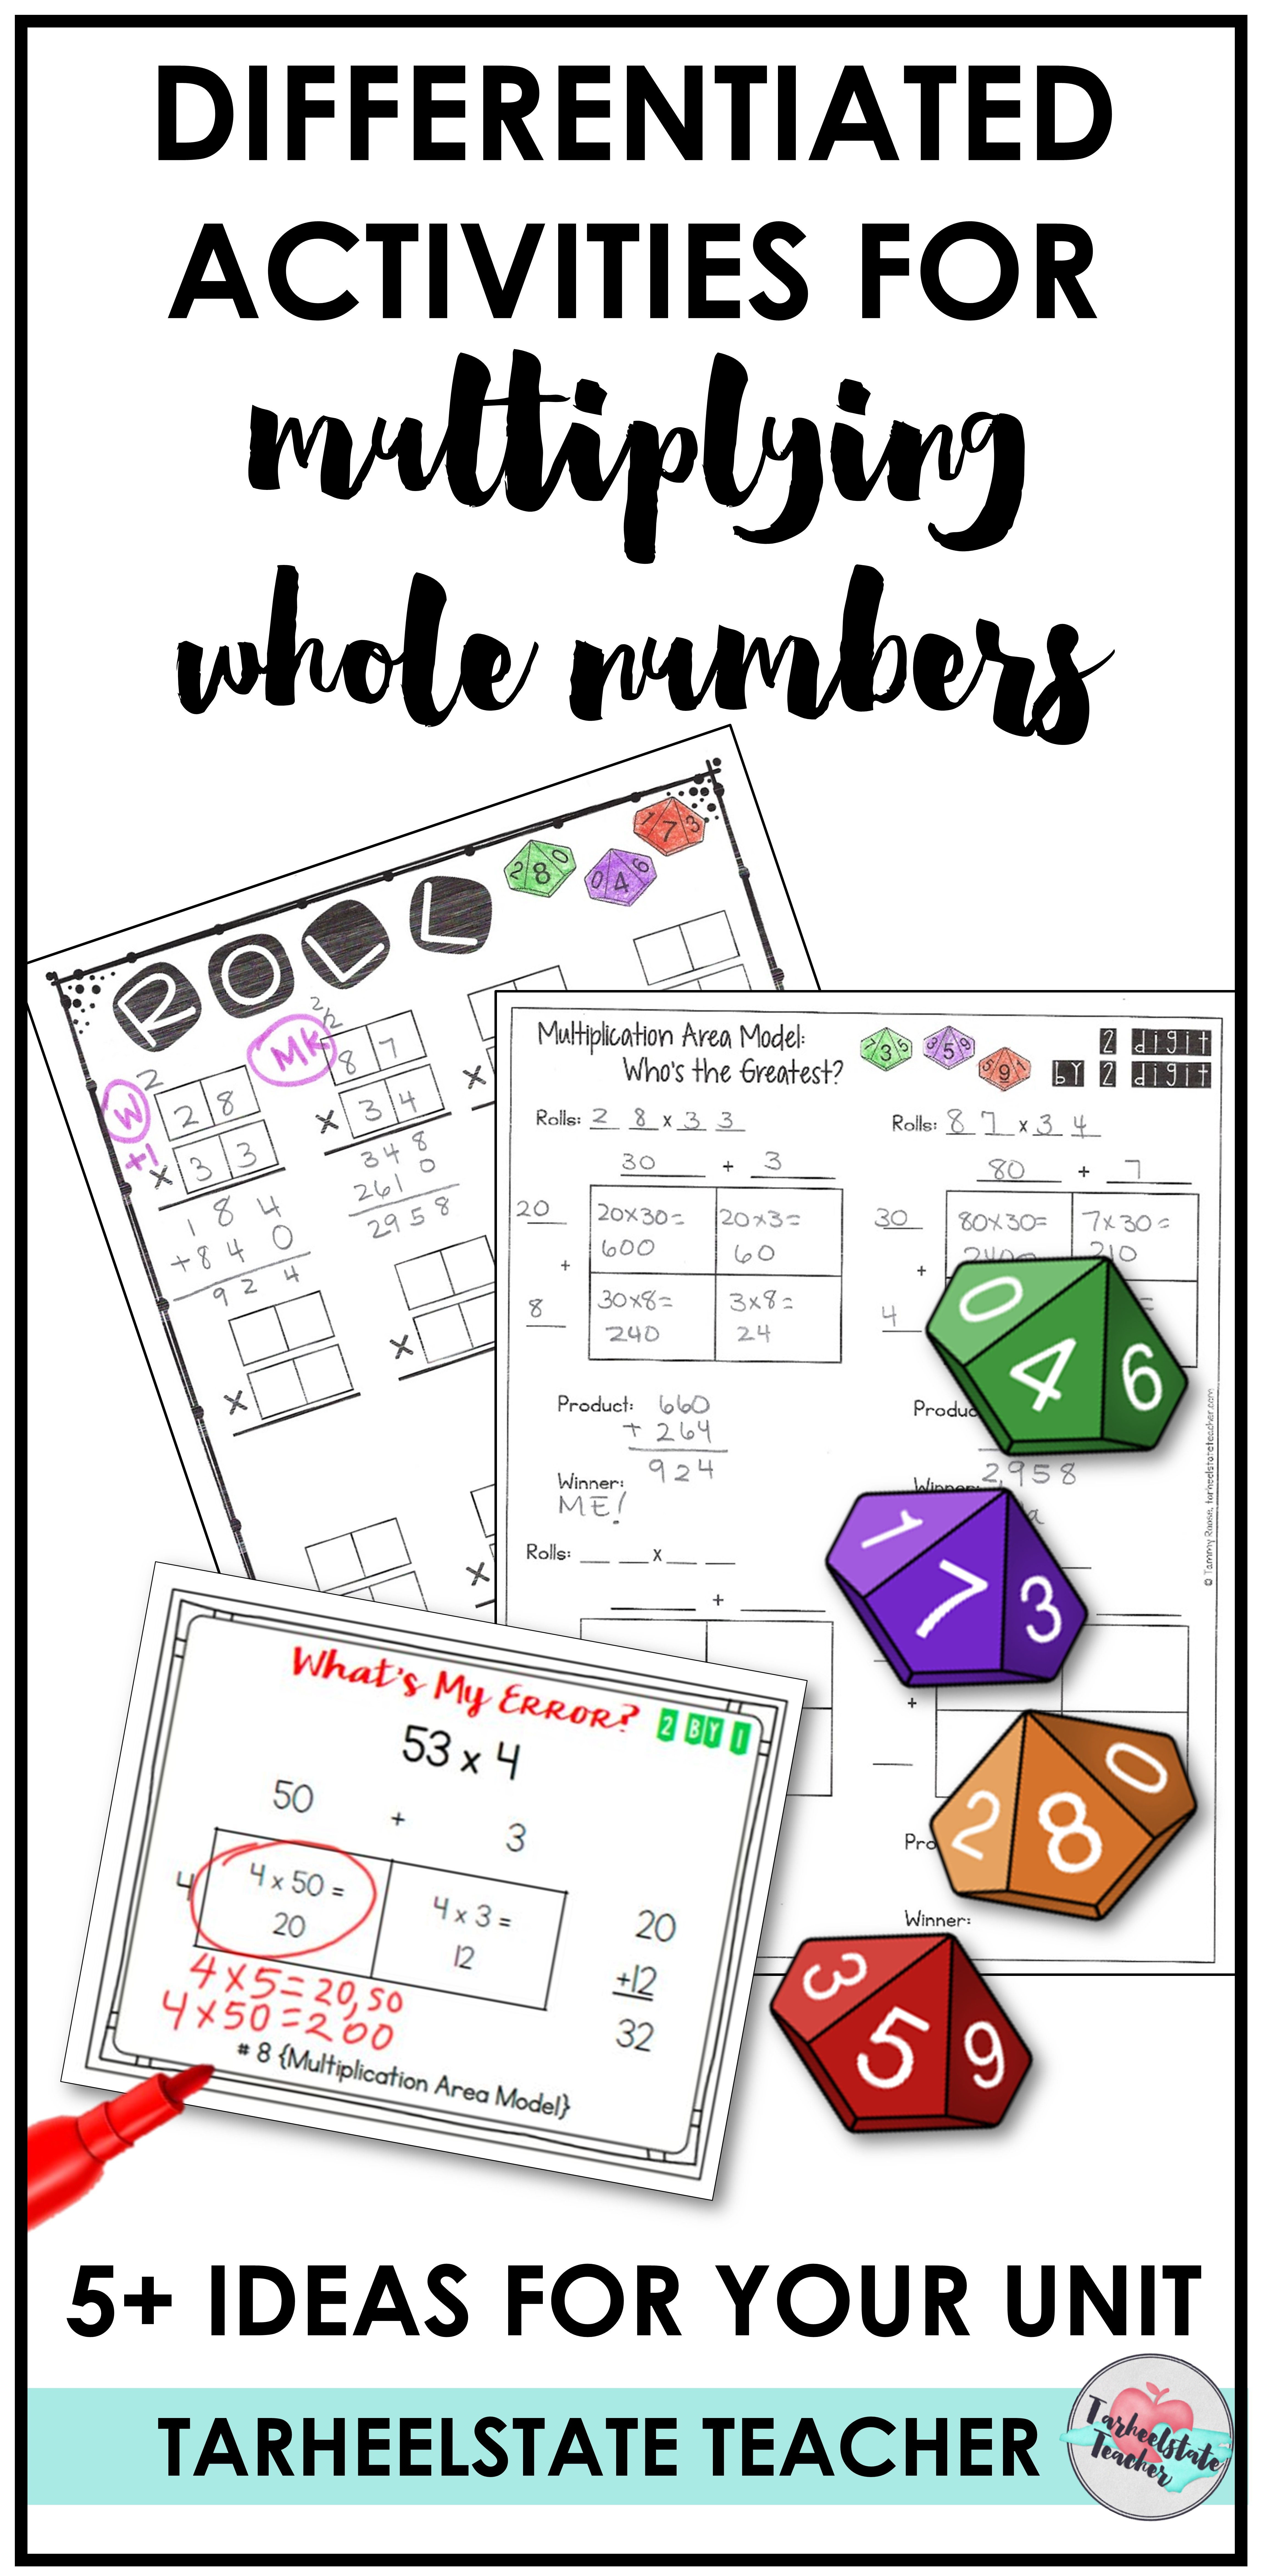 Multiplying Whole Numbers Ideas For 4th And 5th Grade